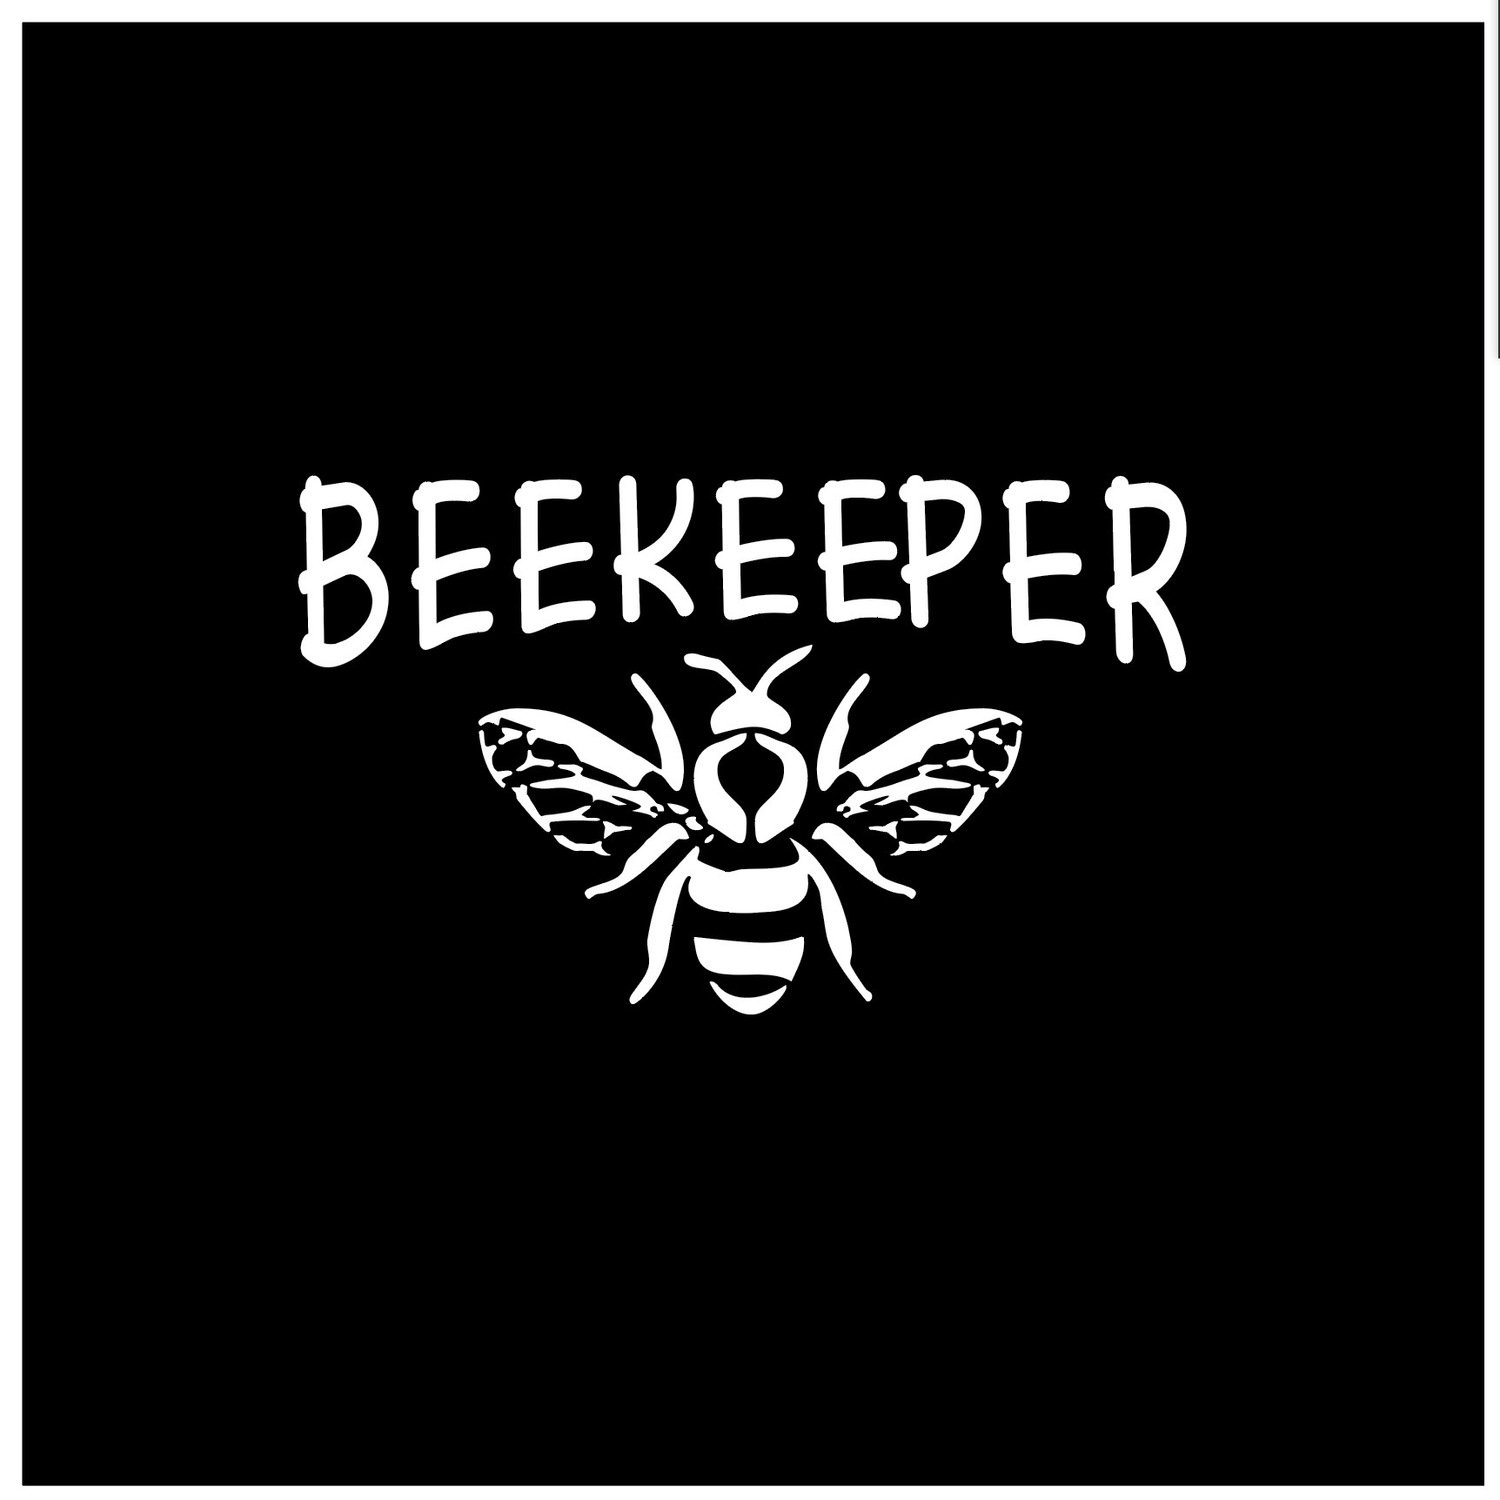 BEEKEEPER DECAL - BEE